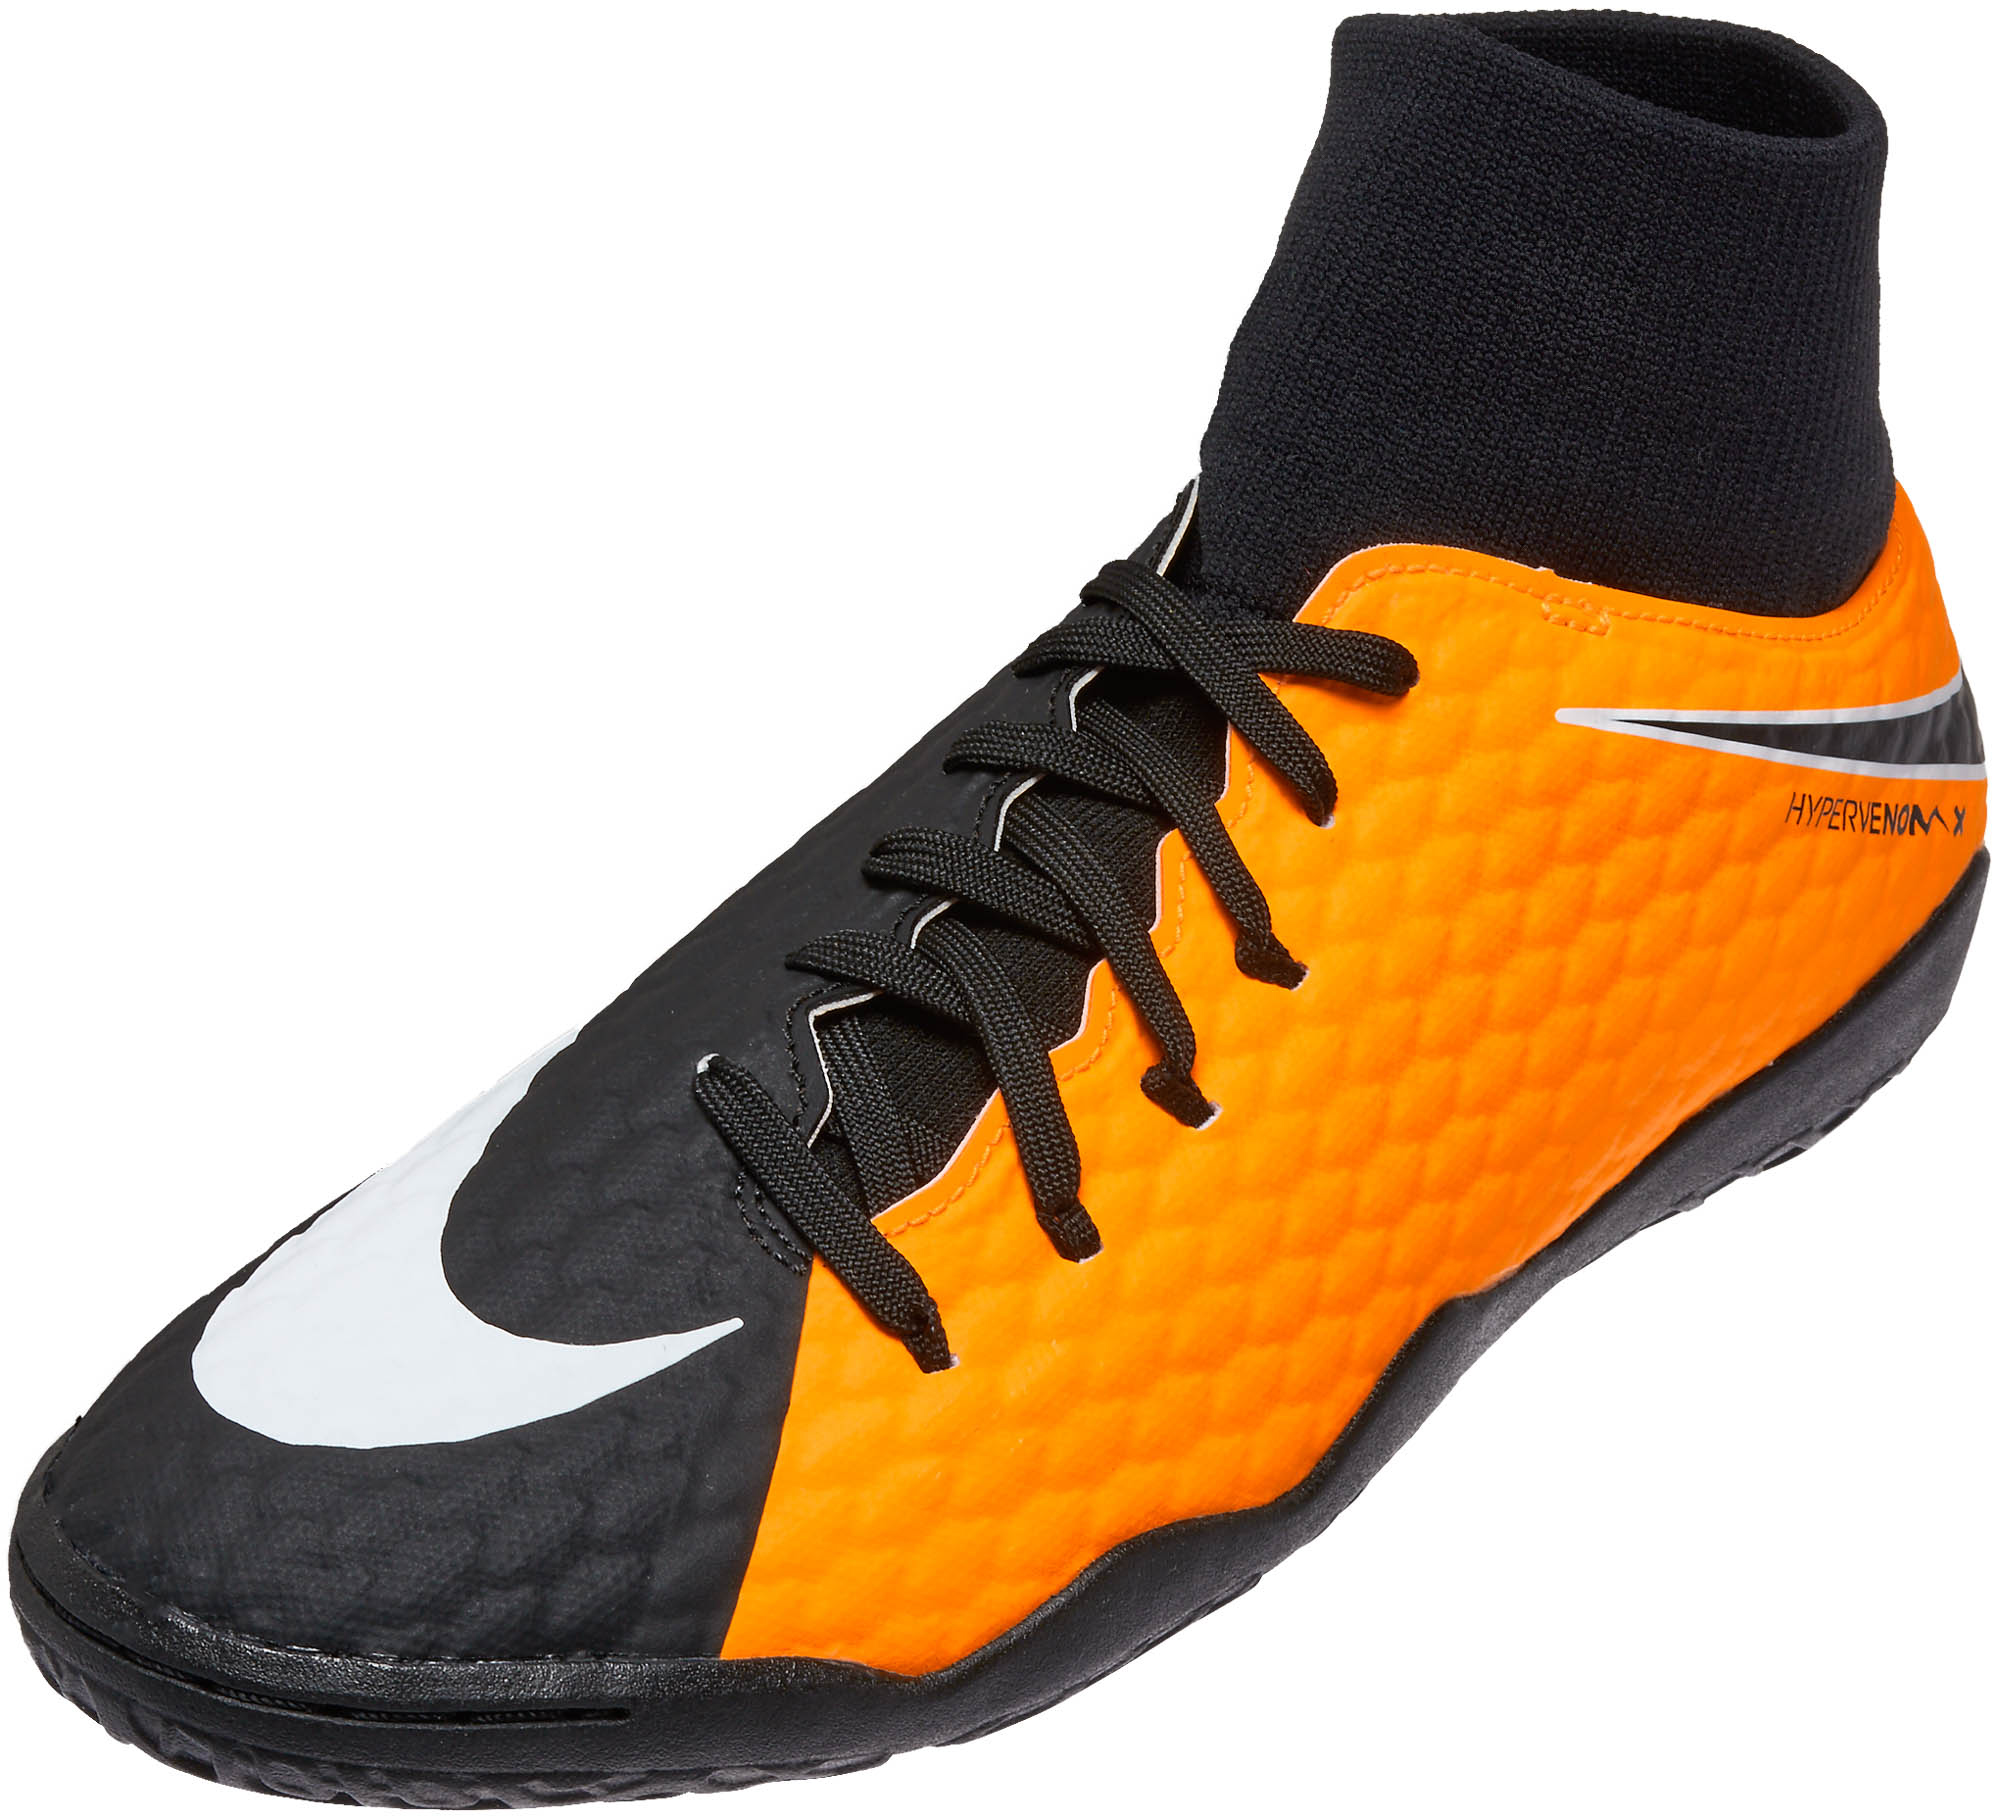 Nike HypervenomX Phelon III DF Indoor Shoes – Laser Orange   Black cd98cf6a2e81